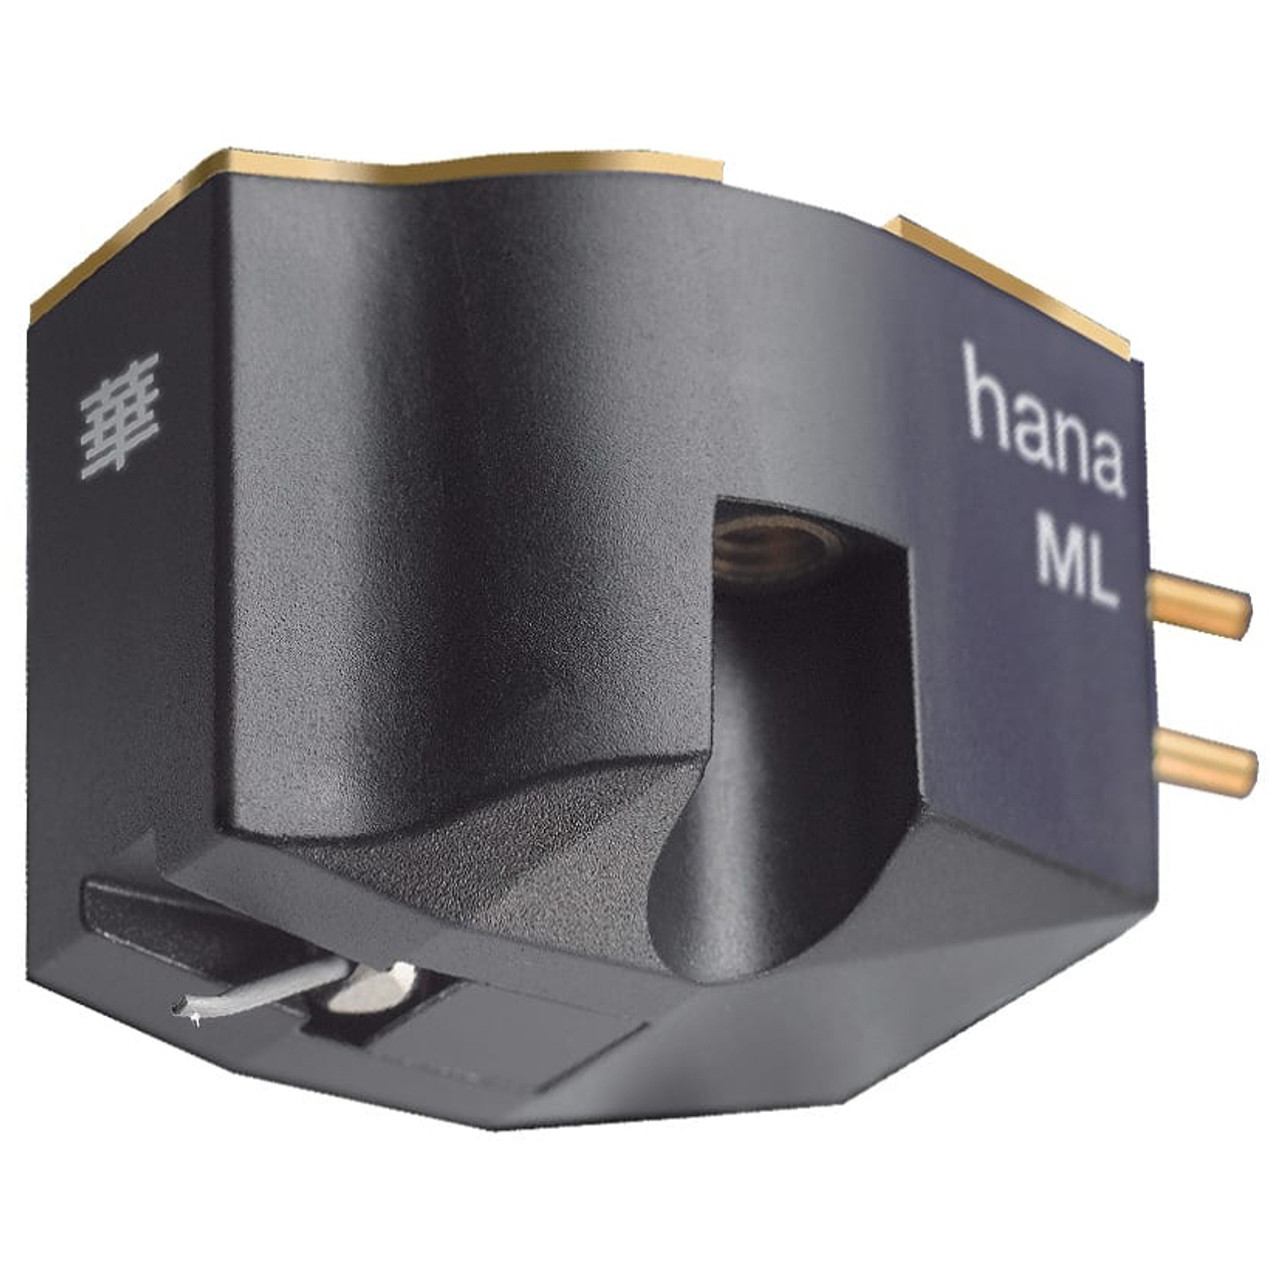 Hana M Deluxe MC cartridge